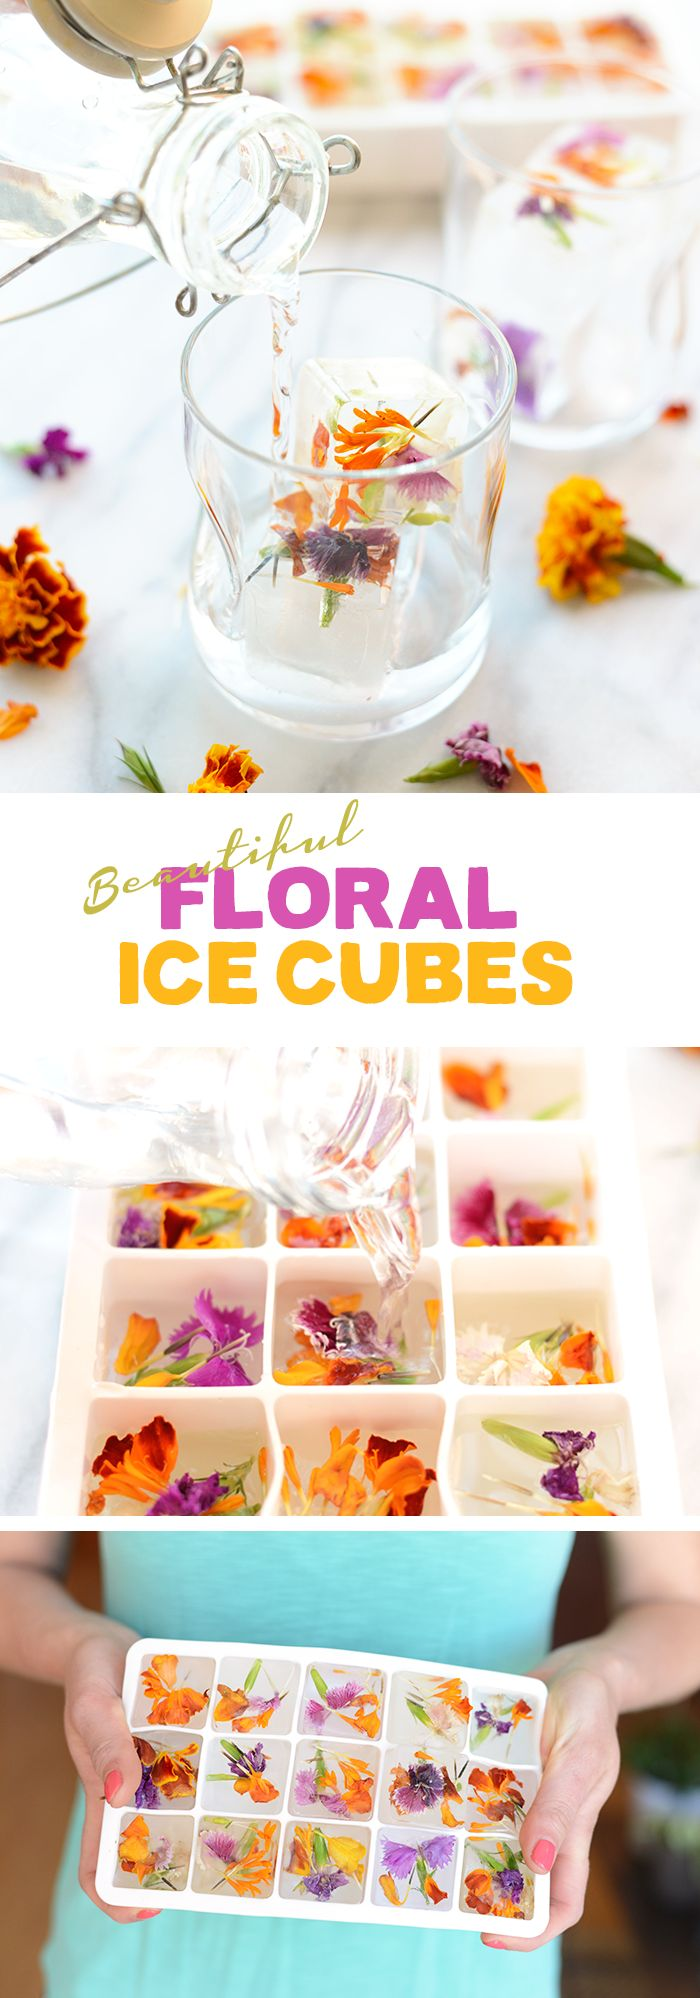 Add some sunshine to your refreshments this summer with these Beautiful Floral Ice Cubes. Just grab some edible flowers and freeze inside inside of your ice cube tray for your next garden party or brunch!